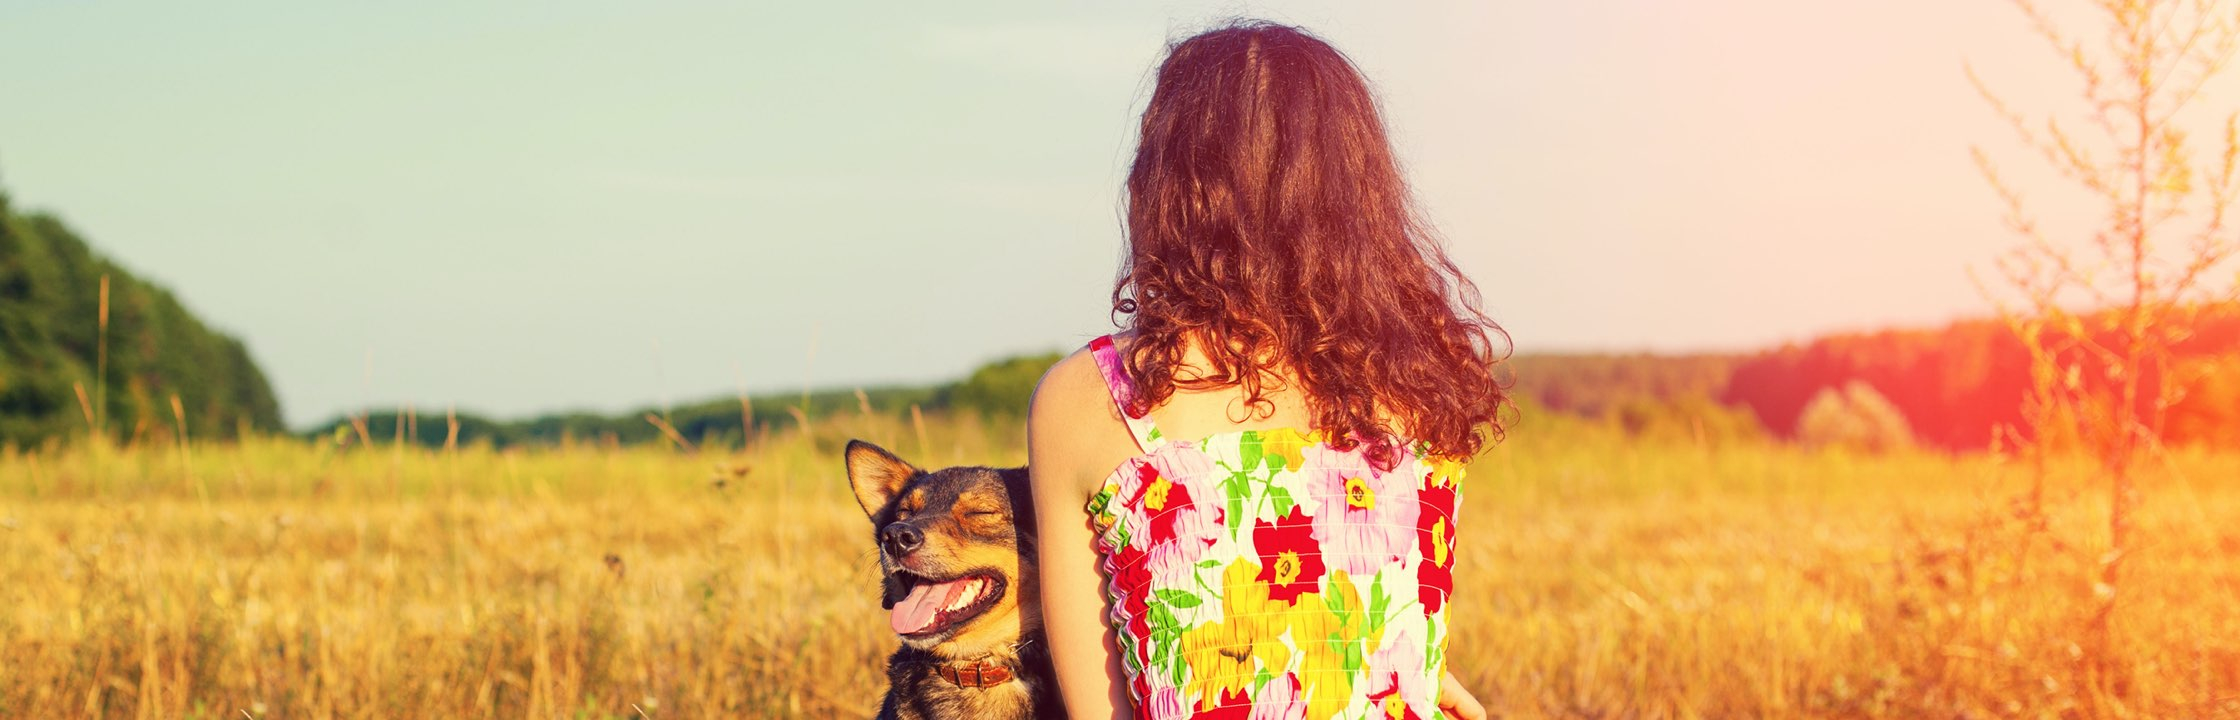 Woman with colourful dress and dog sitting in field